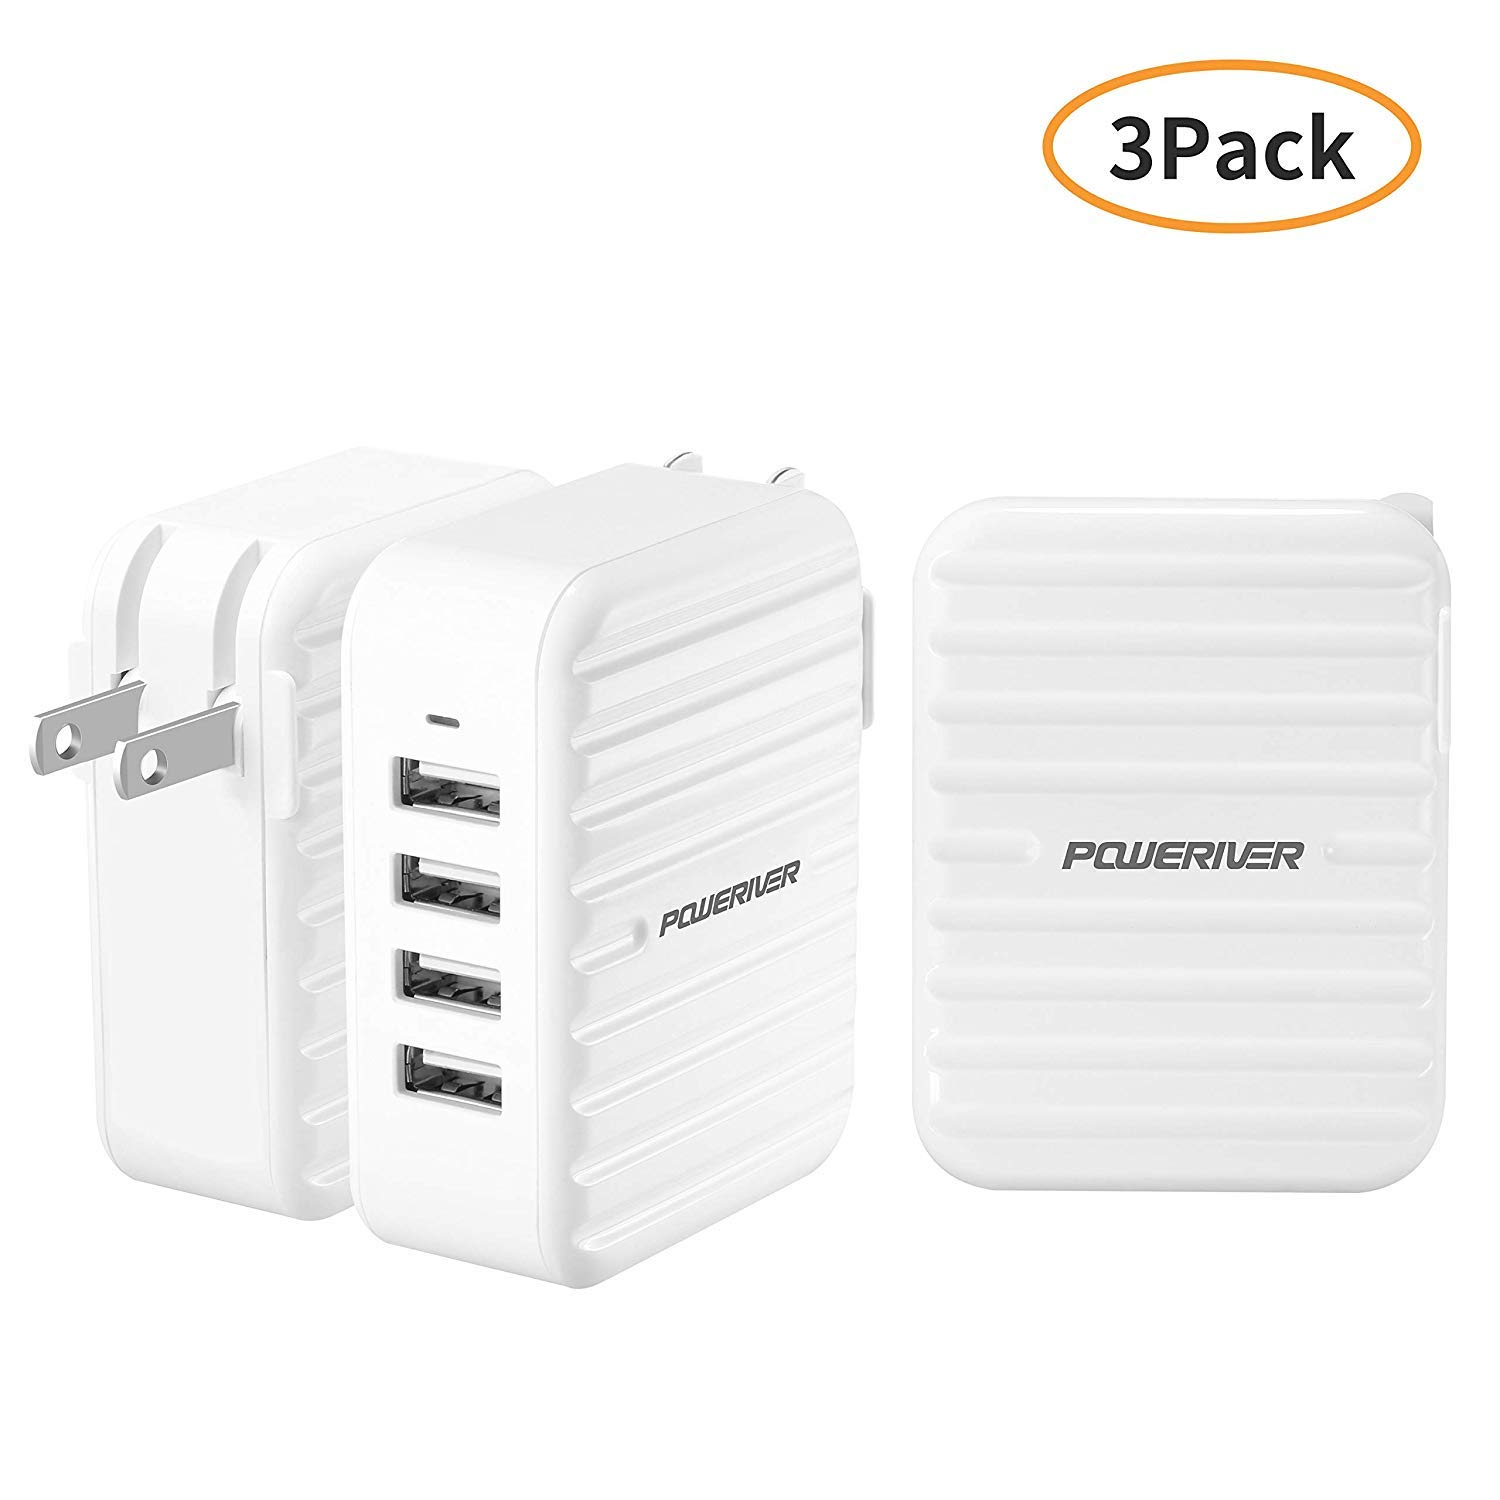 3 Pack USB Wall Charger, POWERIVER Charging Station, 4 Port Travel Wall Charger with SmartID Technology Foldable Plug for iPhone iPad, Samsung Galaxy, HTC by POWERIVER